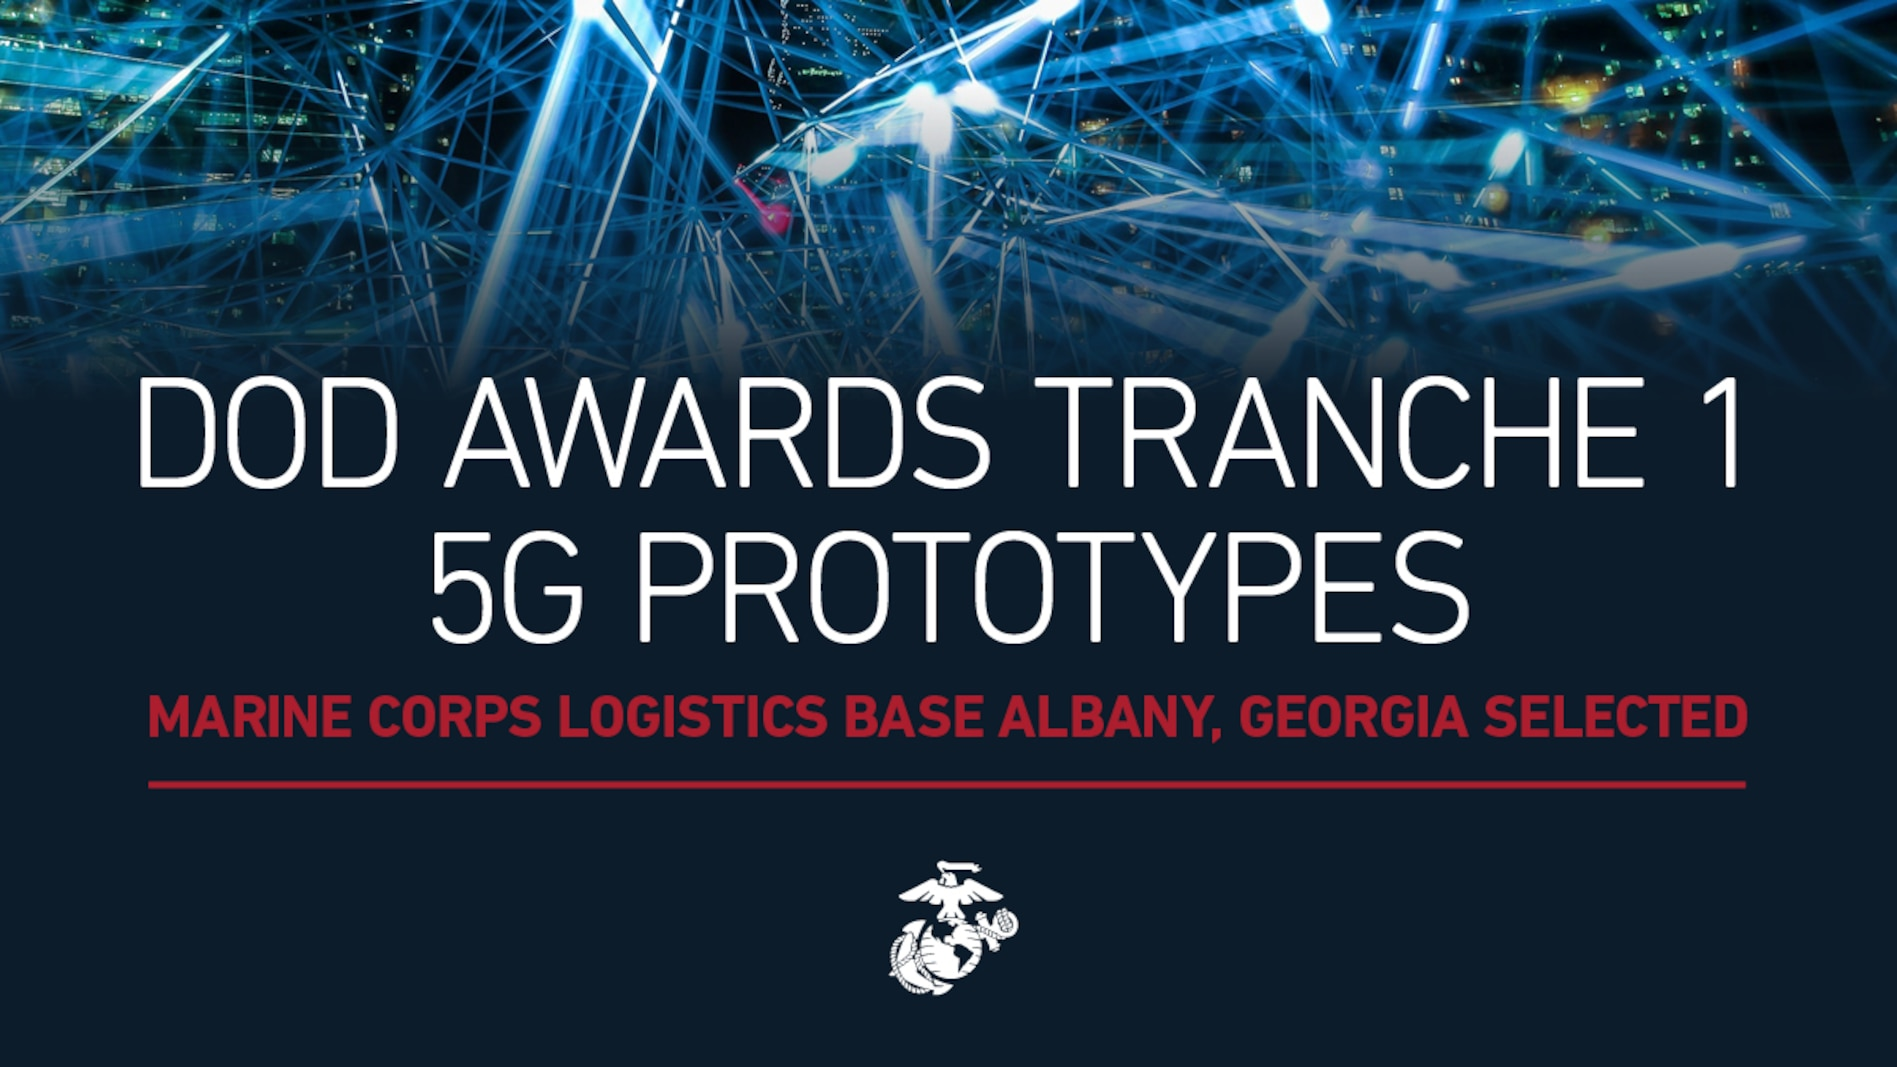 The Office of the Under Secretary of Defense for Research and Engineering (OUSD (R&E)) selected Marine Corps Logistics Base (MCLB) Albany, Georgia, to be one of five Tranche 1 sites for the Department of Defense's 5G to Next G Initiative. (U.S. Marine Corps)